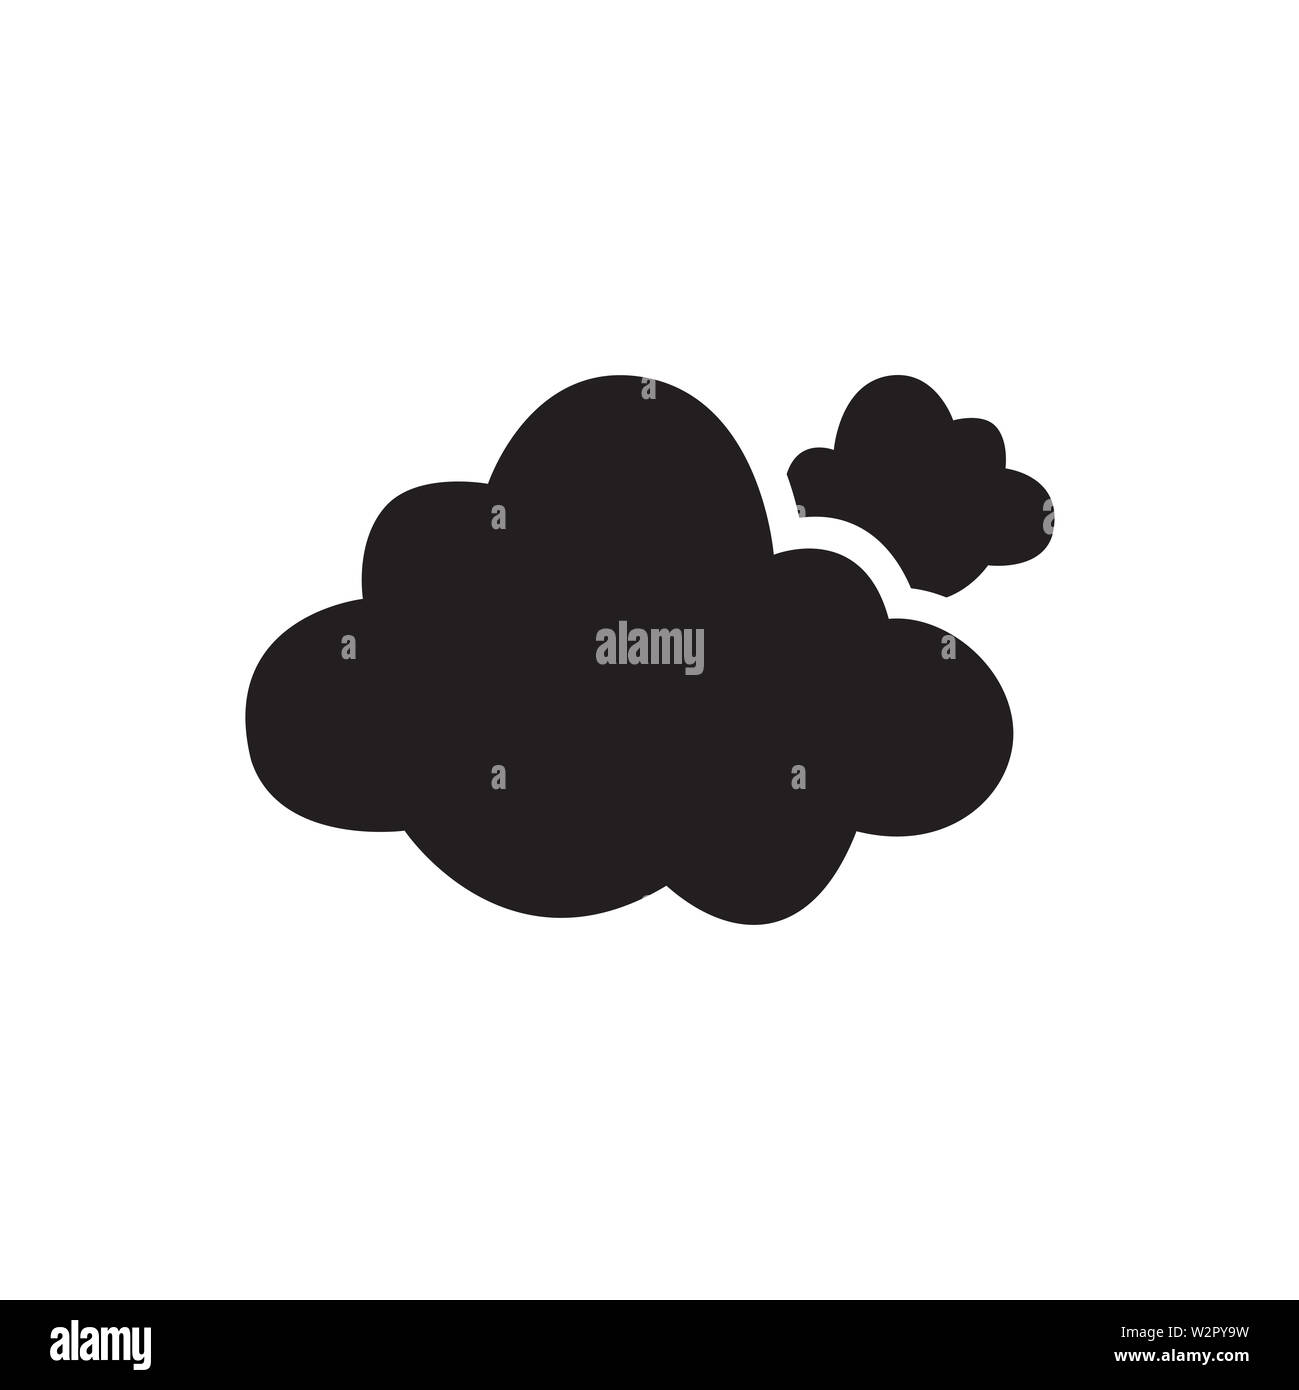 Cloud Icon In Flat Style Vector Icon For Apps, UI, Websites. Cloudy Black Icon Vector Illustration. - Stock Image